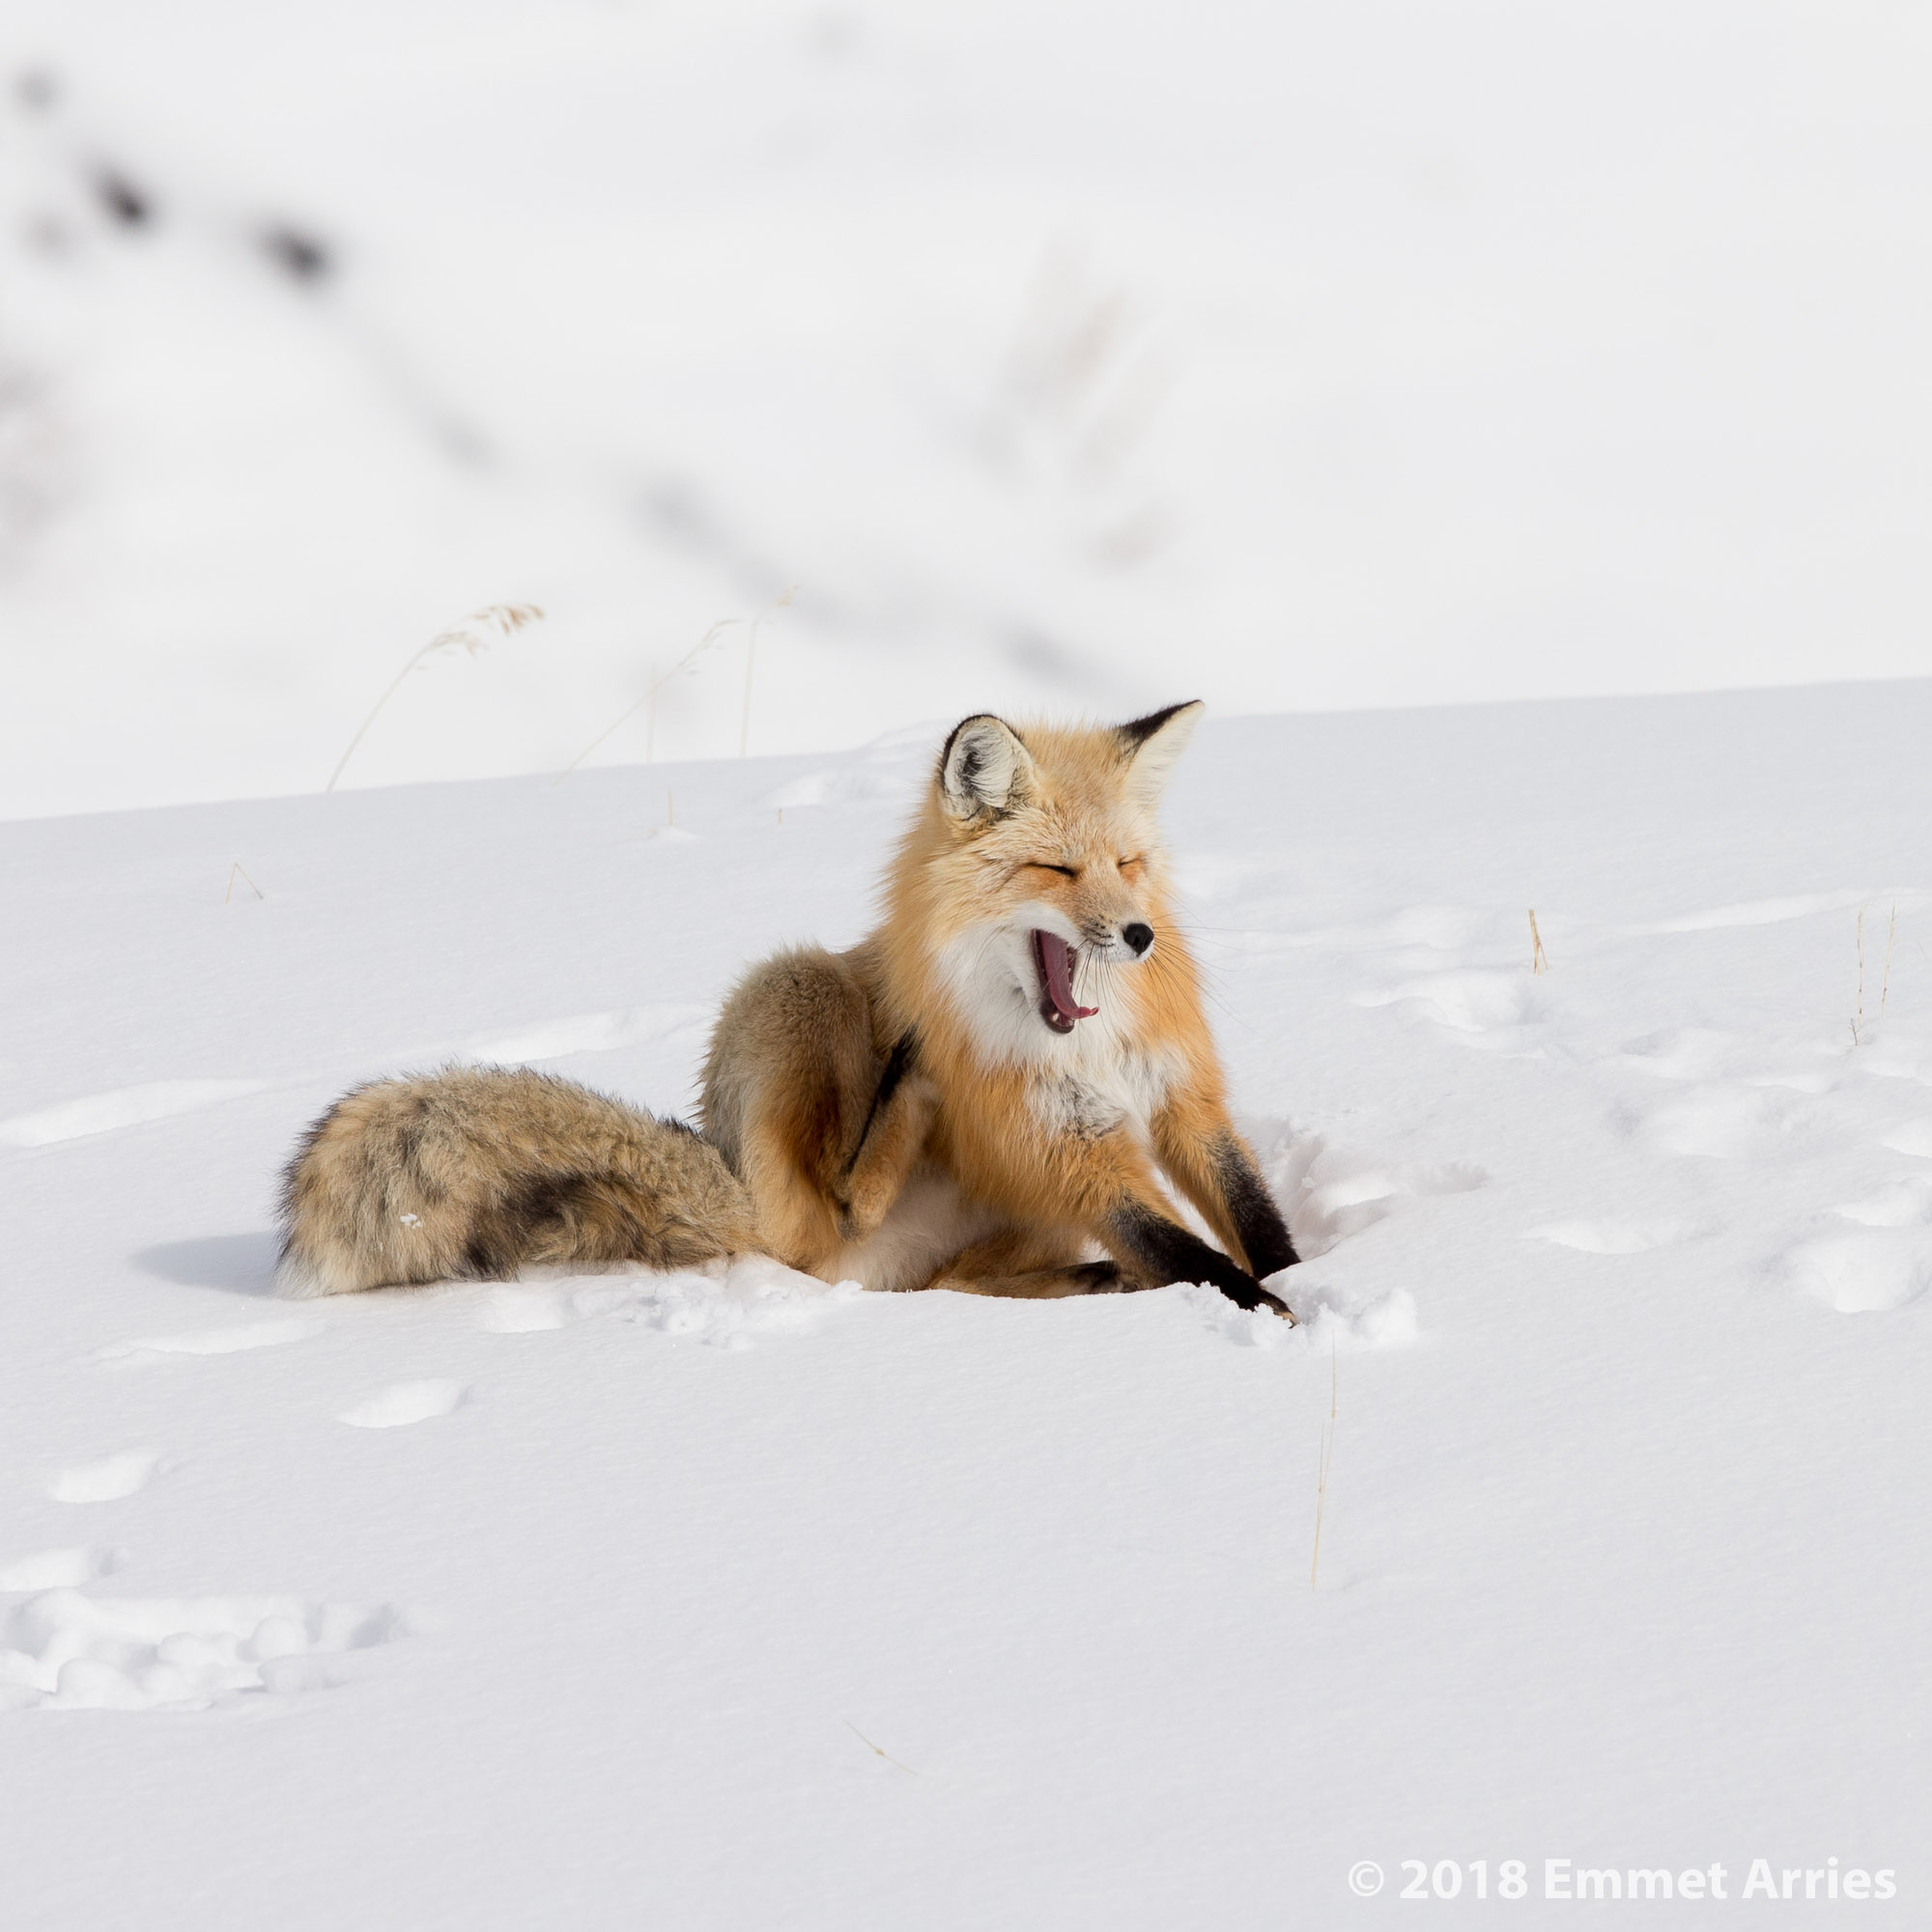 After waiting three hours for this red fox to wake up, he took this big stretch and ambled away. A yawn and scratch after a long nap in the snow.